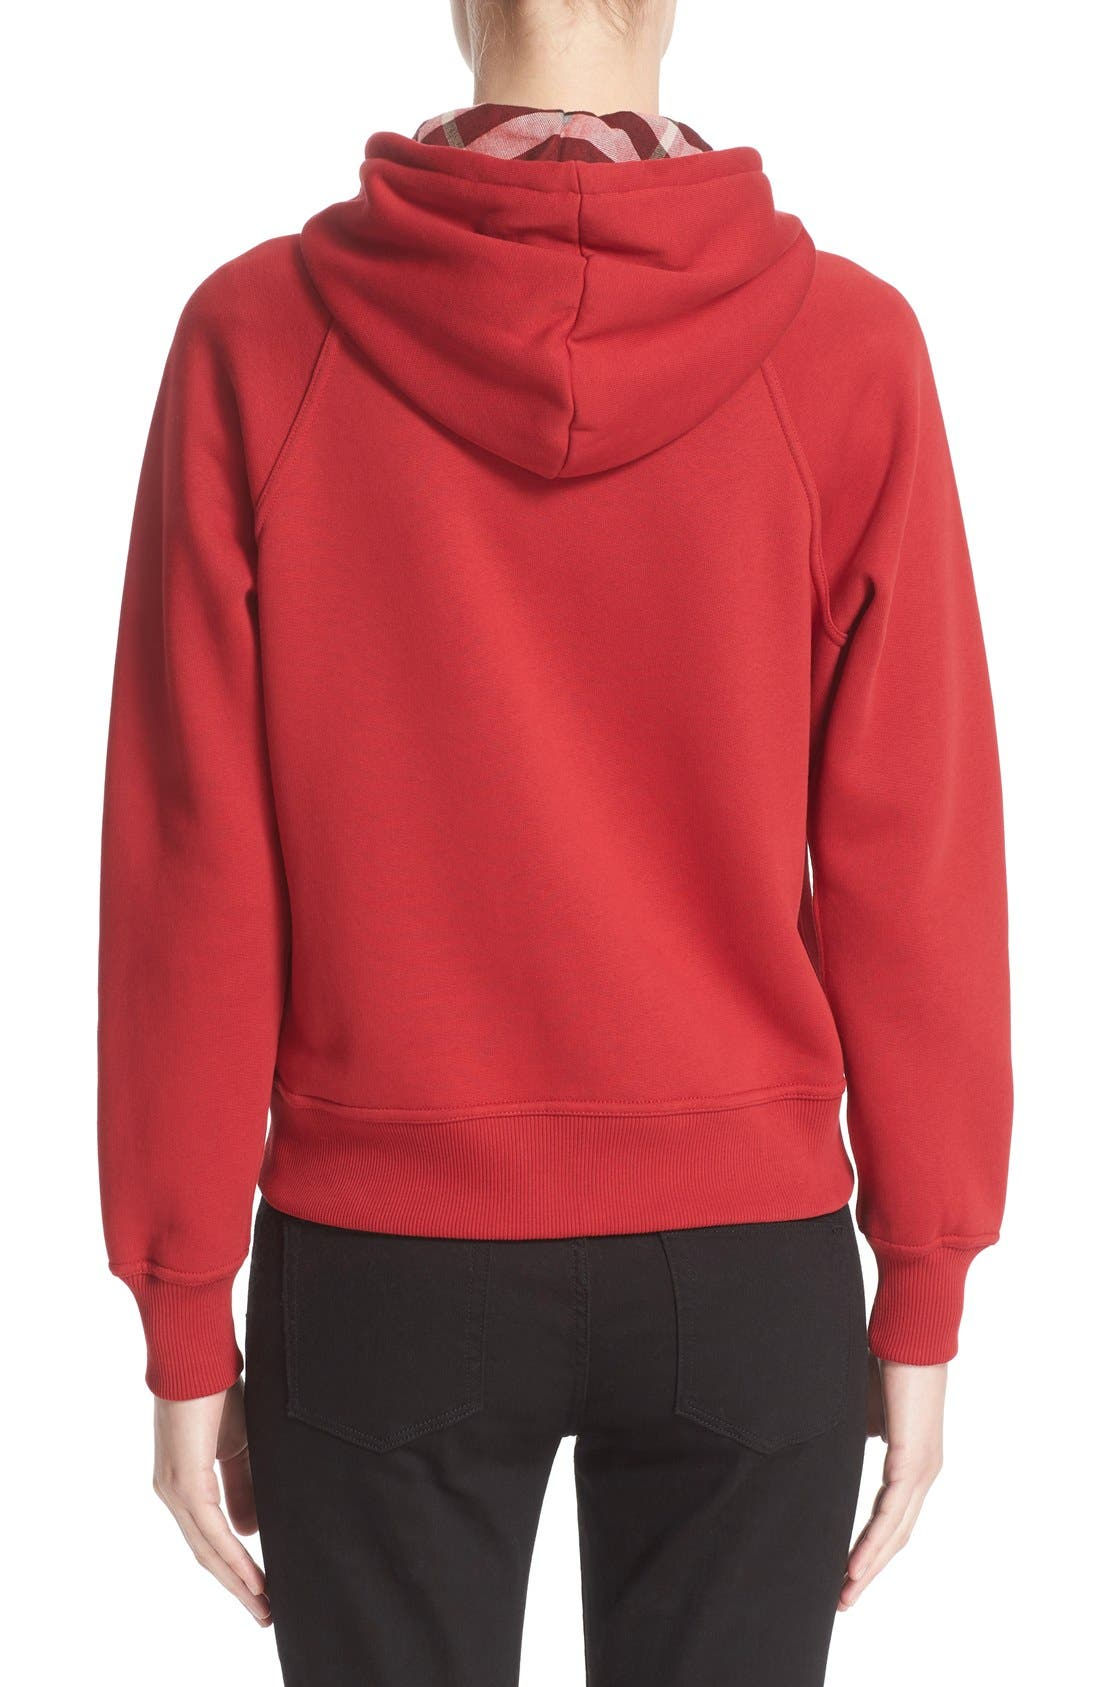 BURBERRY, Check Print Hoodie, Alternate thumbnail 5, color, PARADE RED